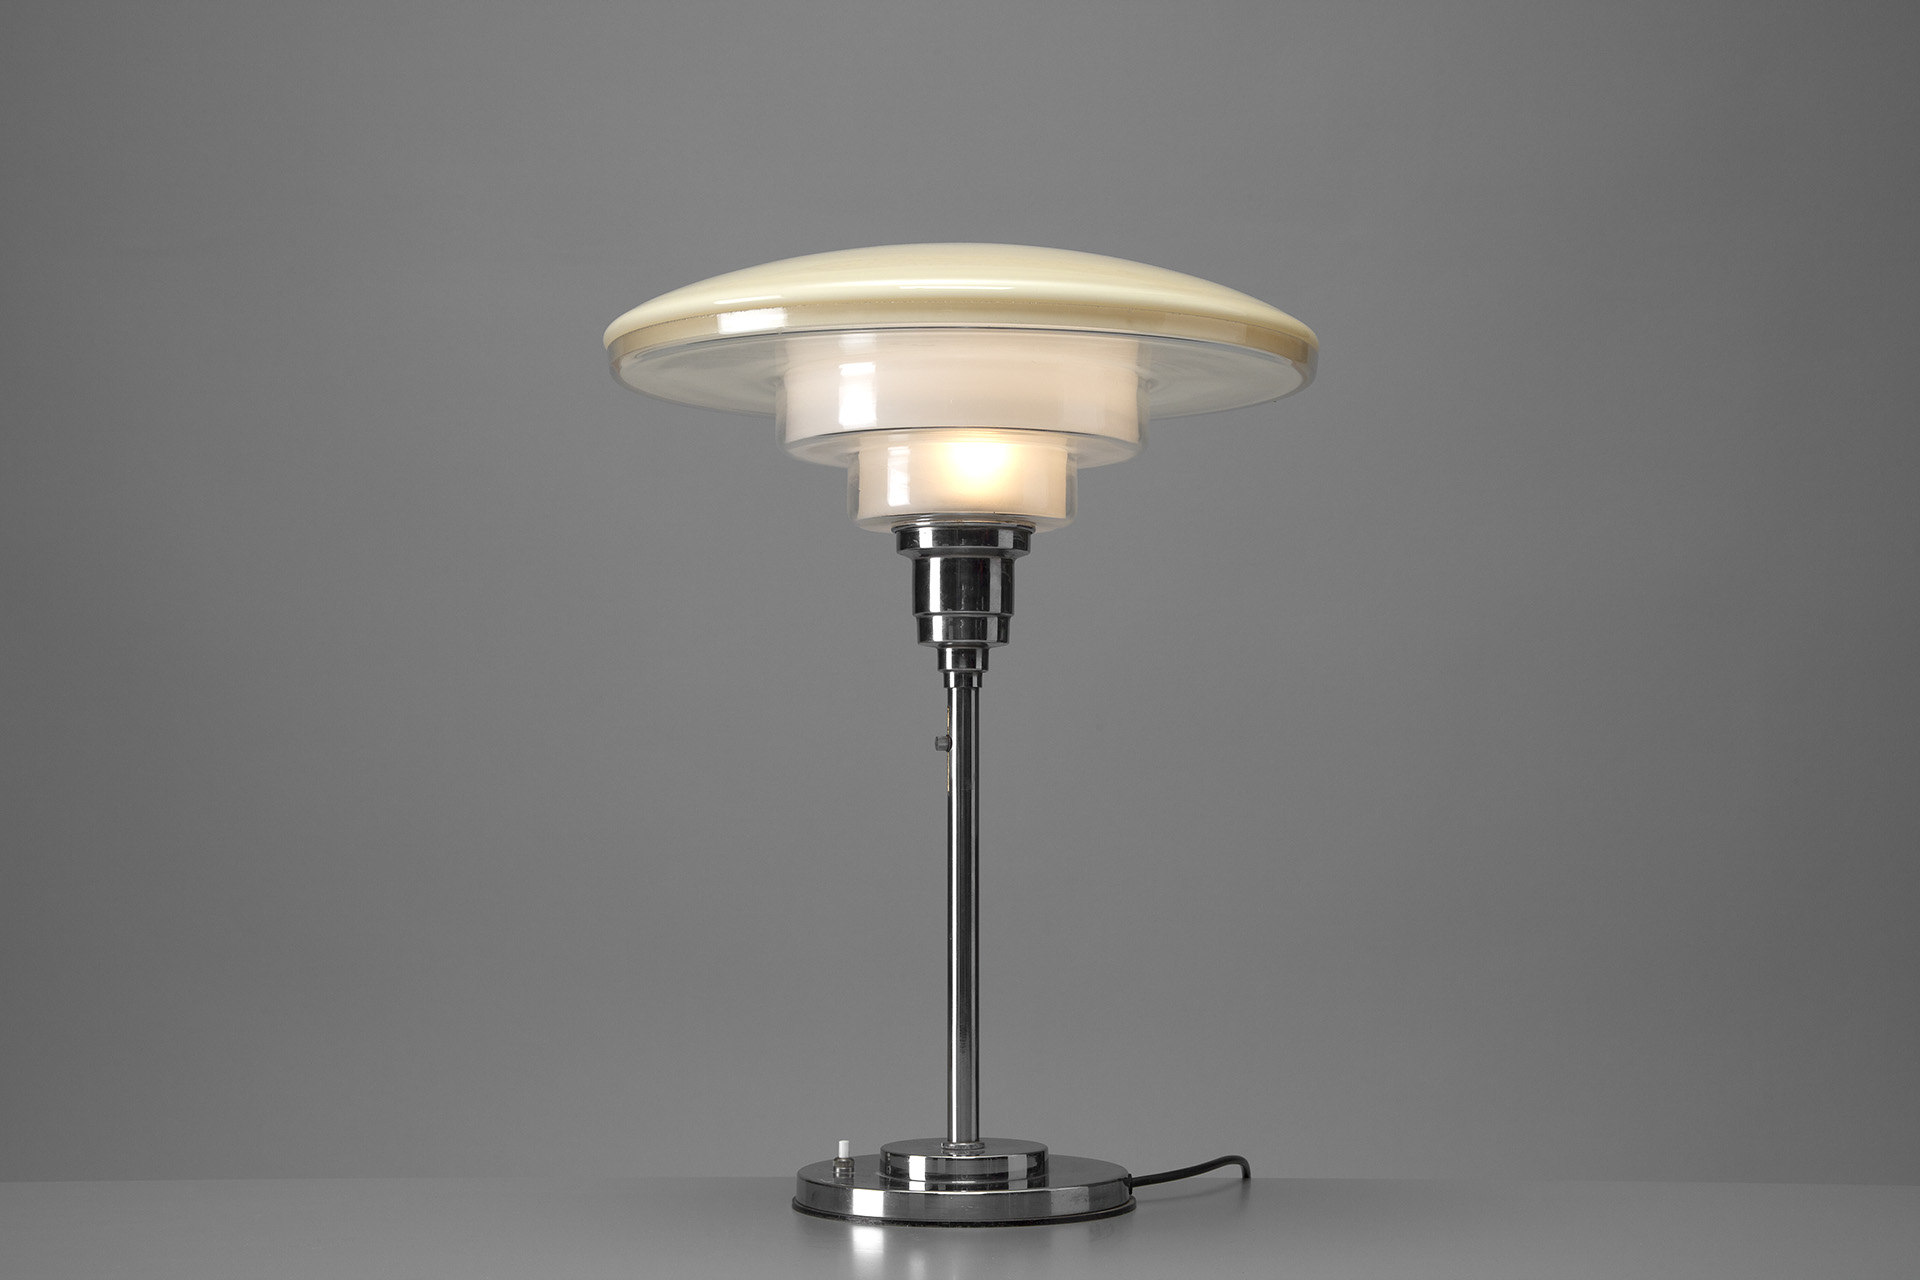 Jacksons extra large sistrah table lamp cf otto mller extra large sistrah table lamp aloadofball Image collections